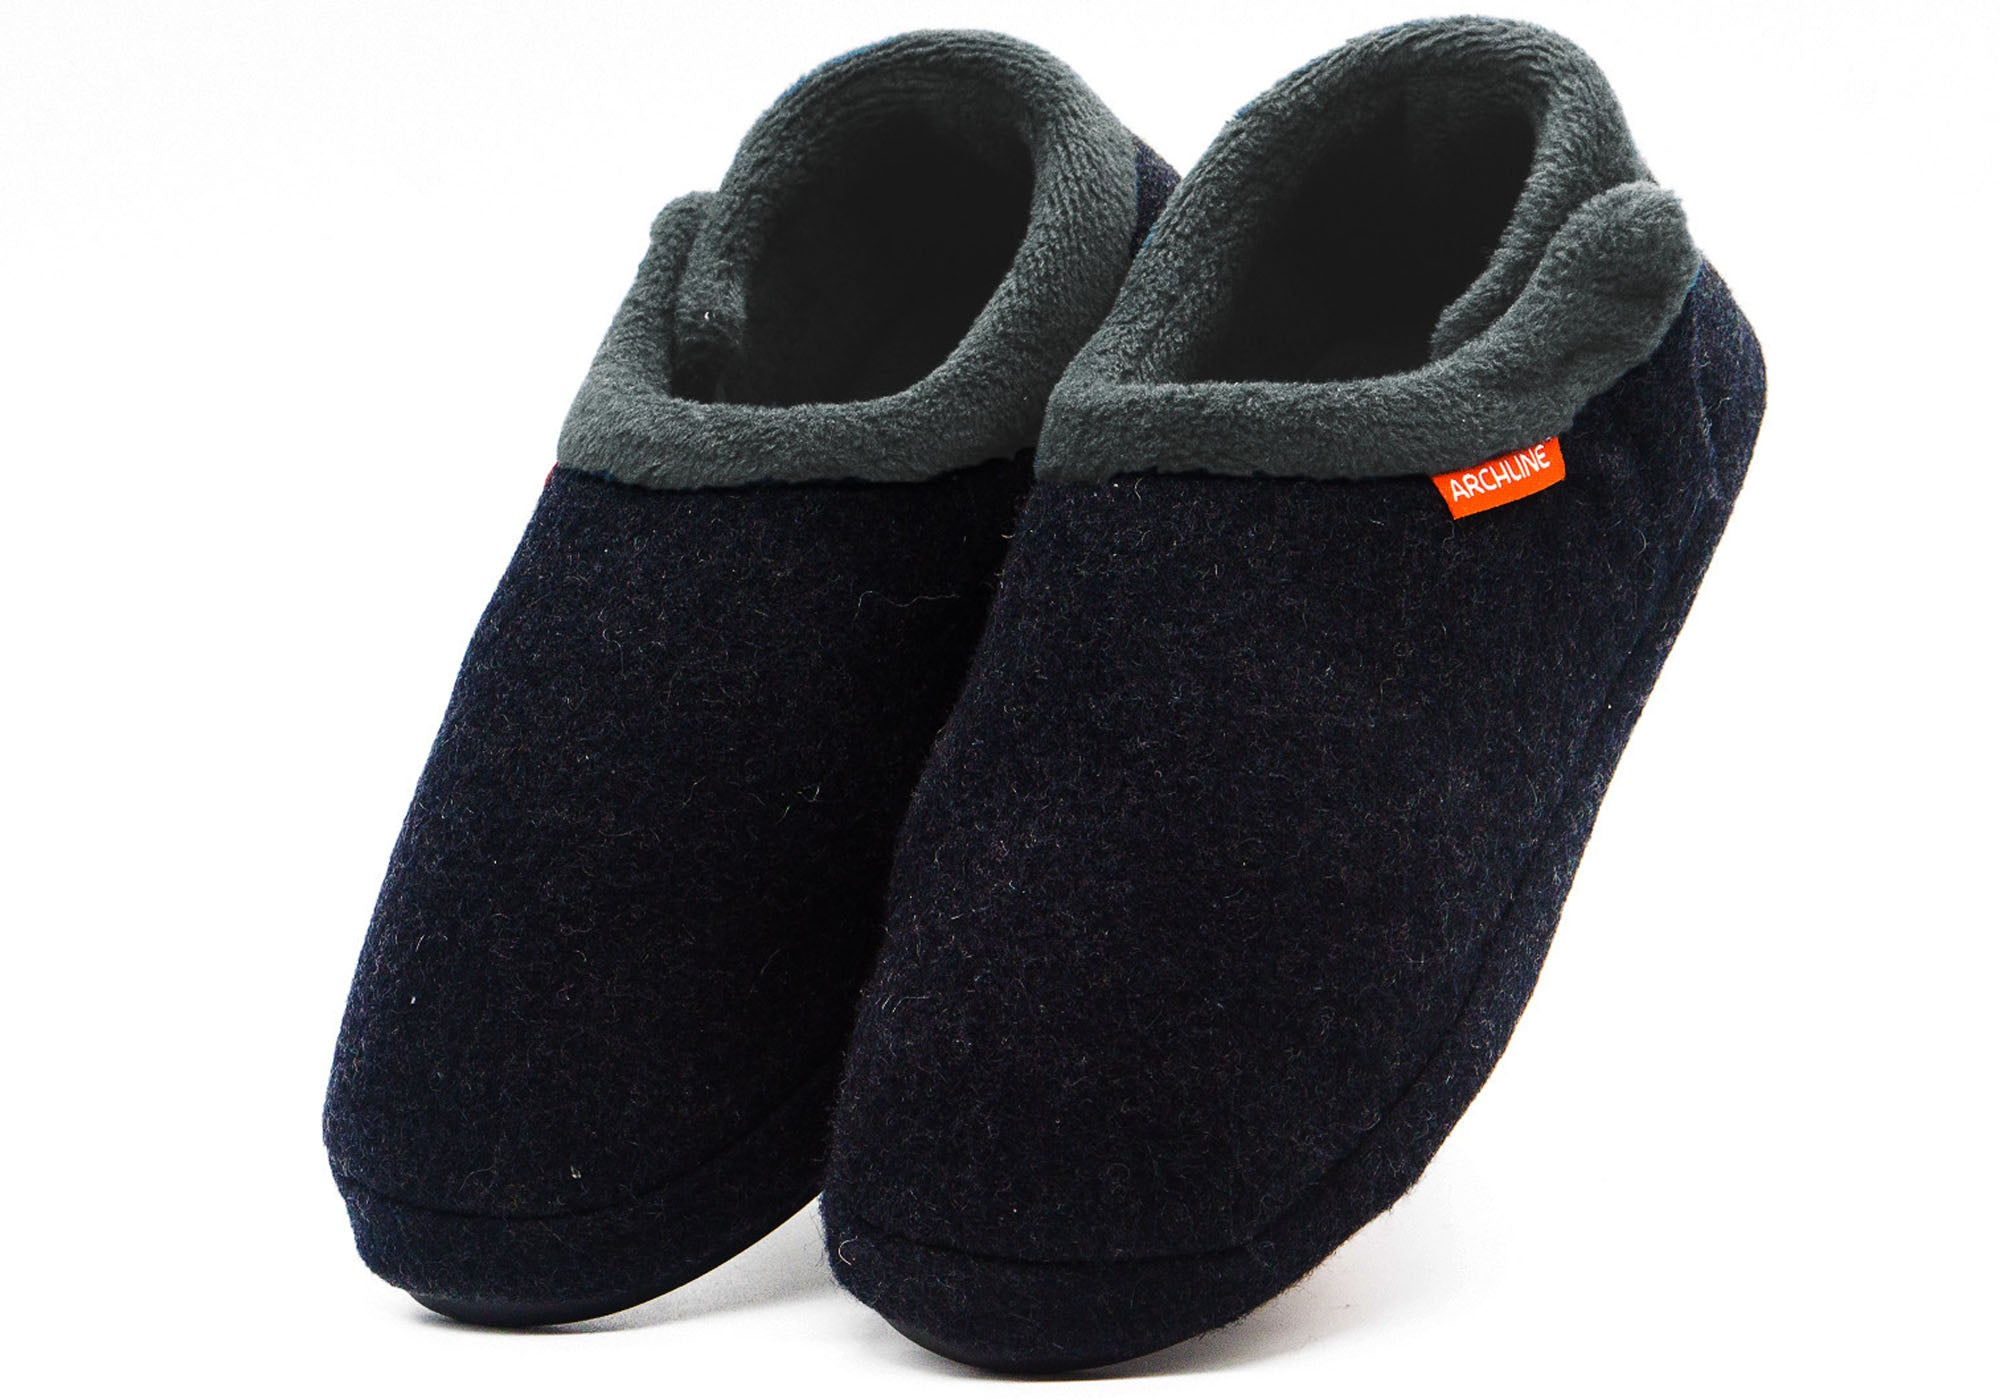 26a60b9cf Home Archline 2018 Model Womens Closed Toe Comfort Orthotic Slippers.  Charcoal Marl ...